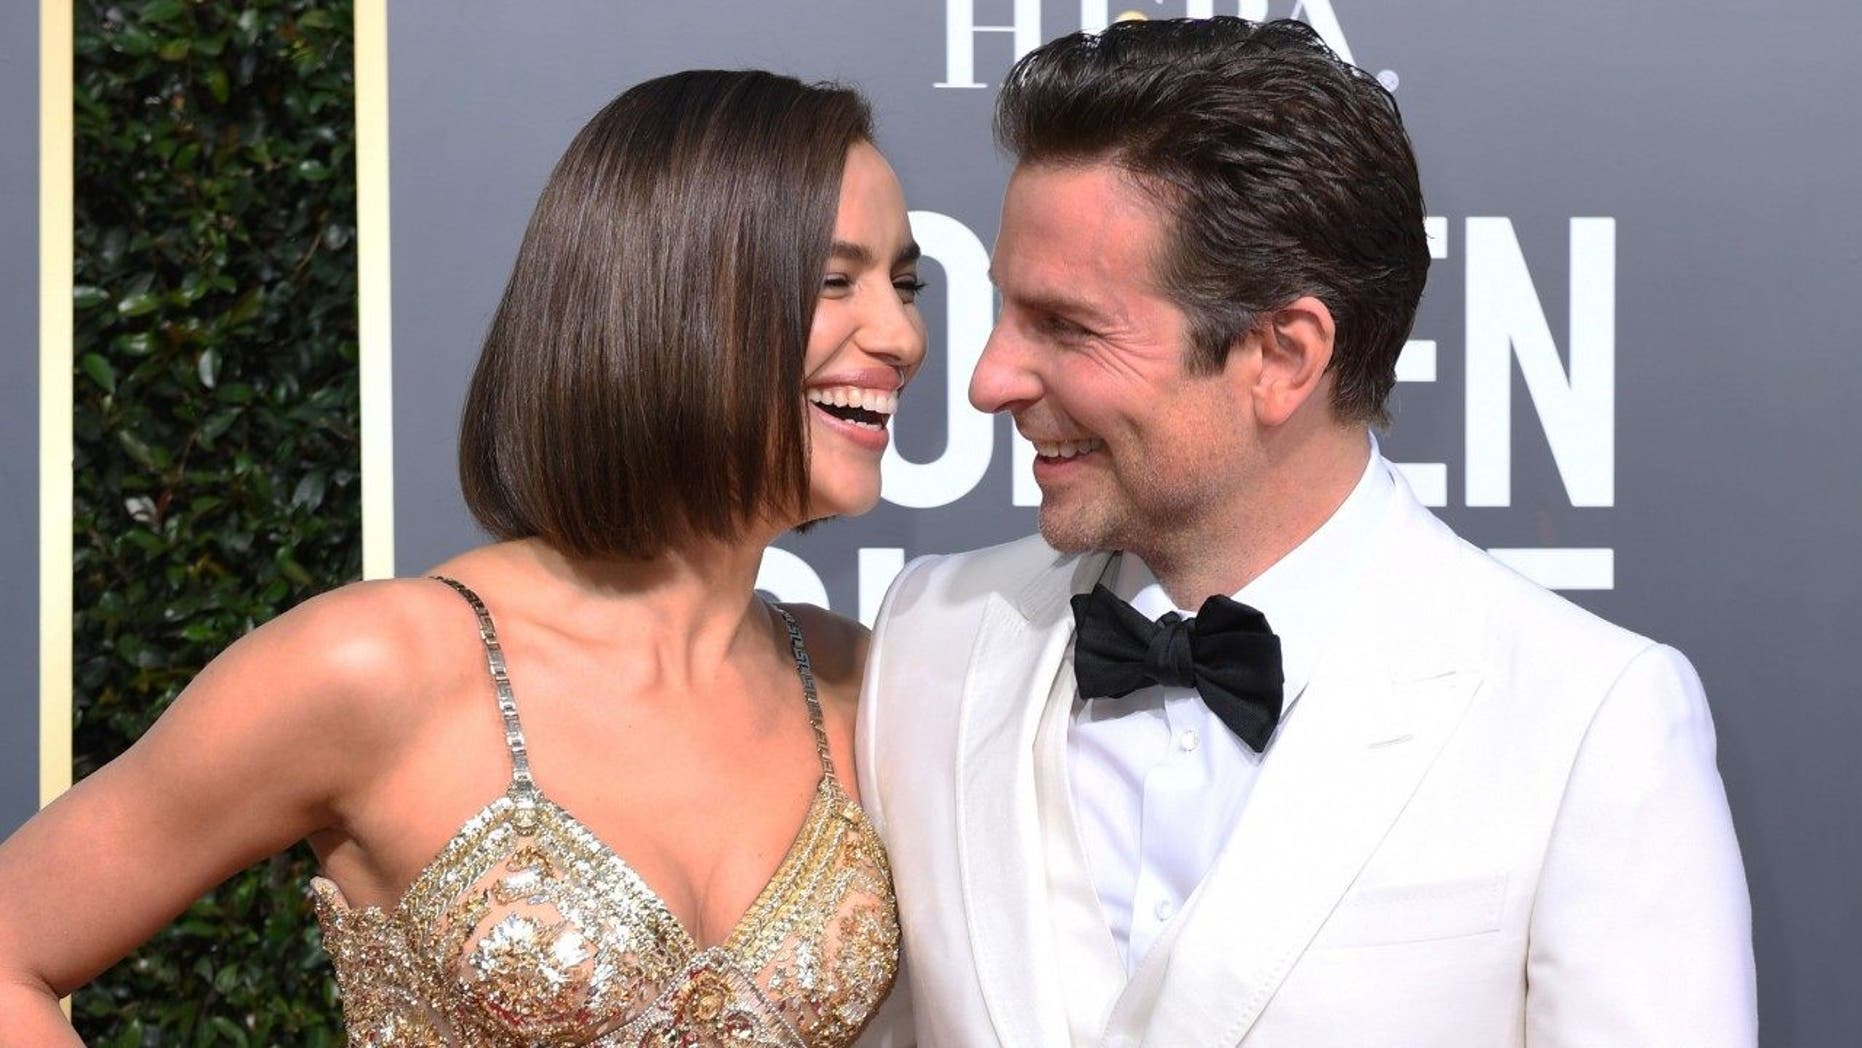 Irina Shayk revealed the reason why she doesn't talk about her relationship with Bradley Cooper.